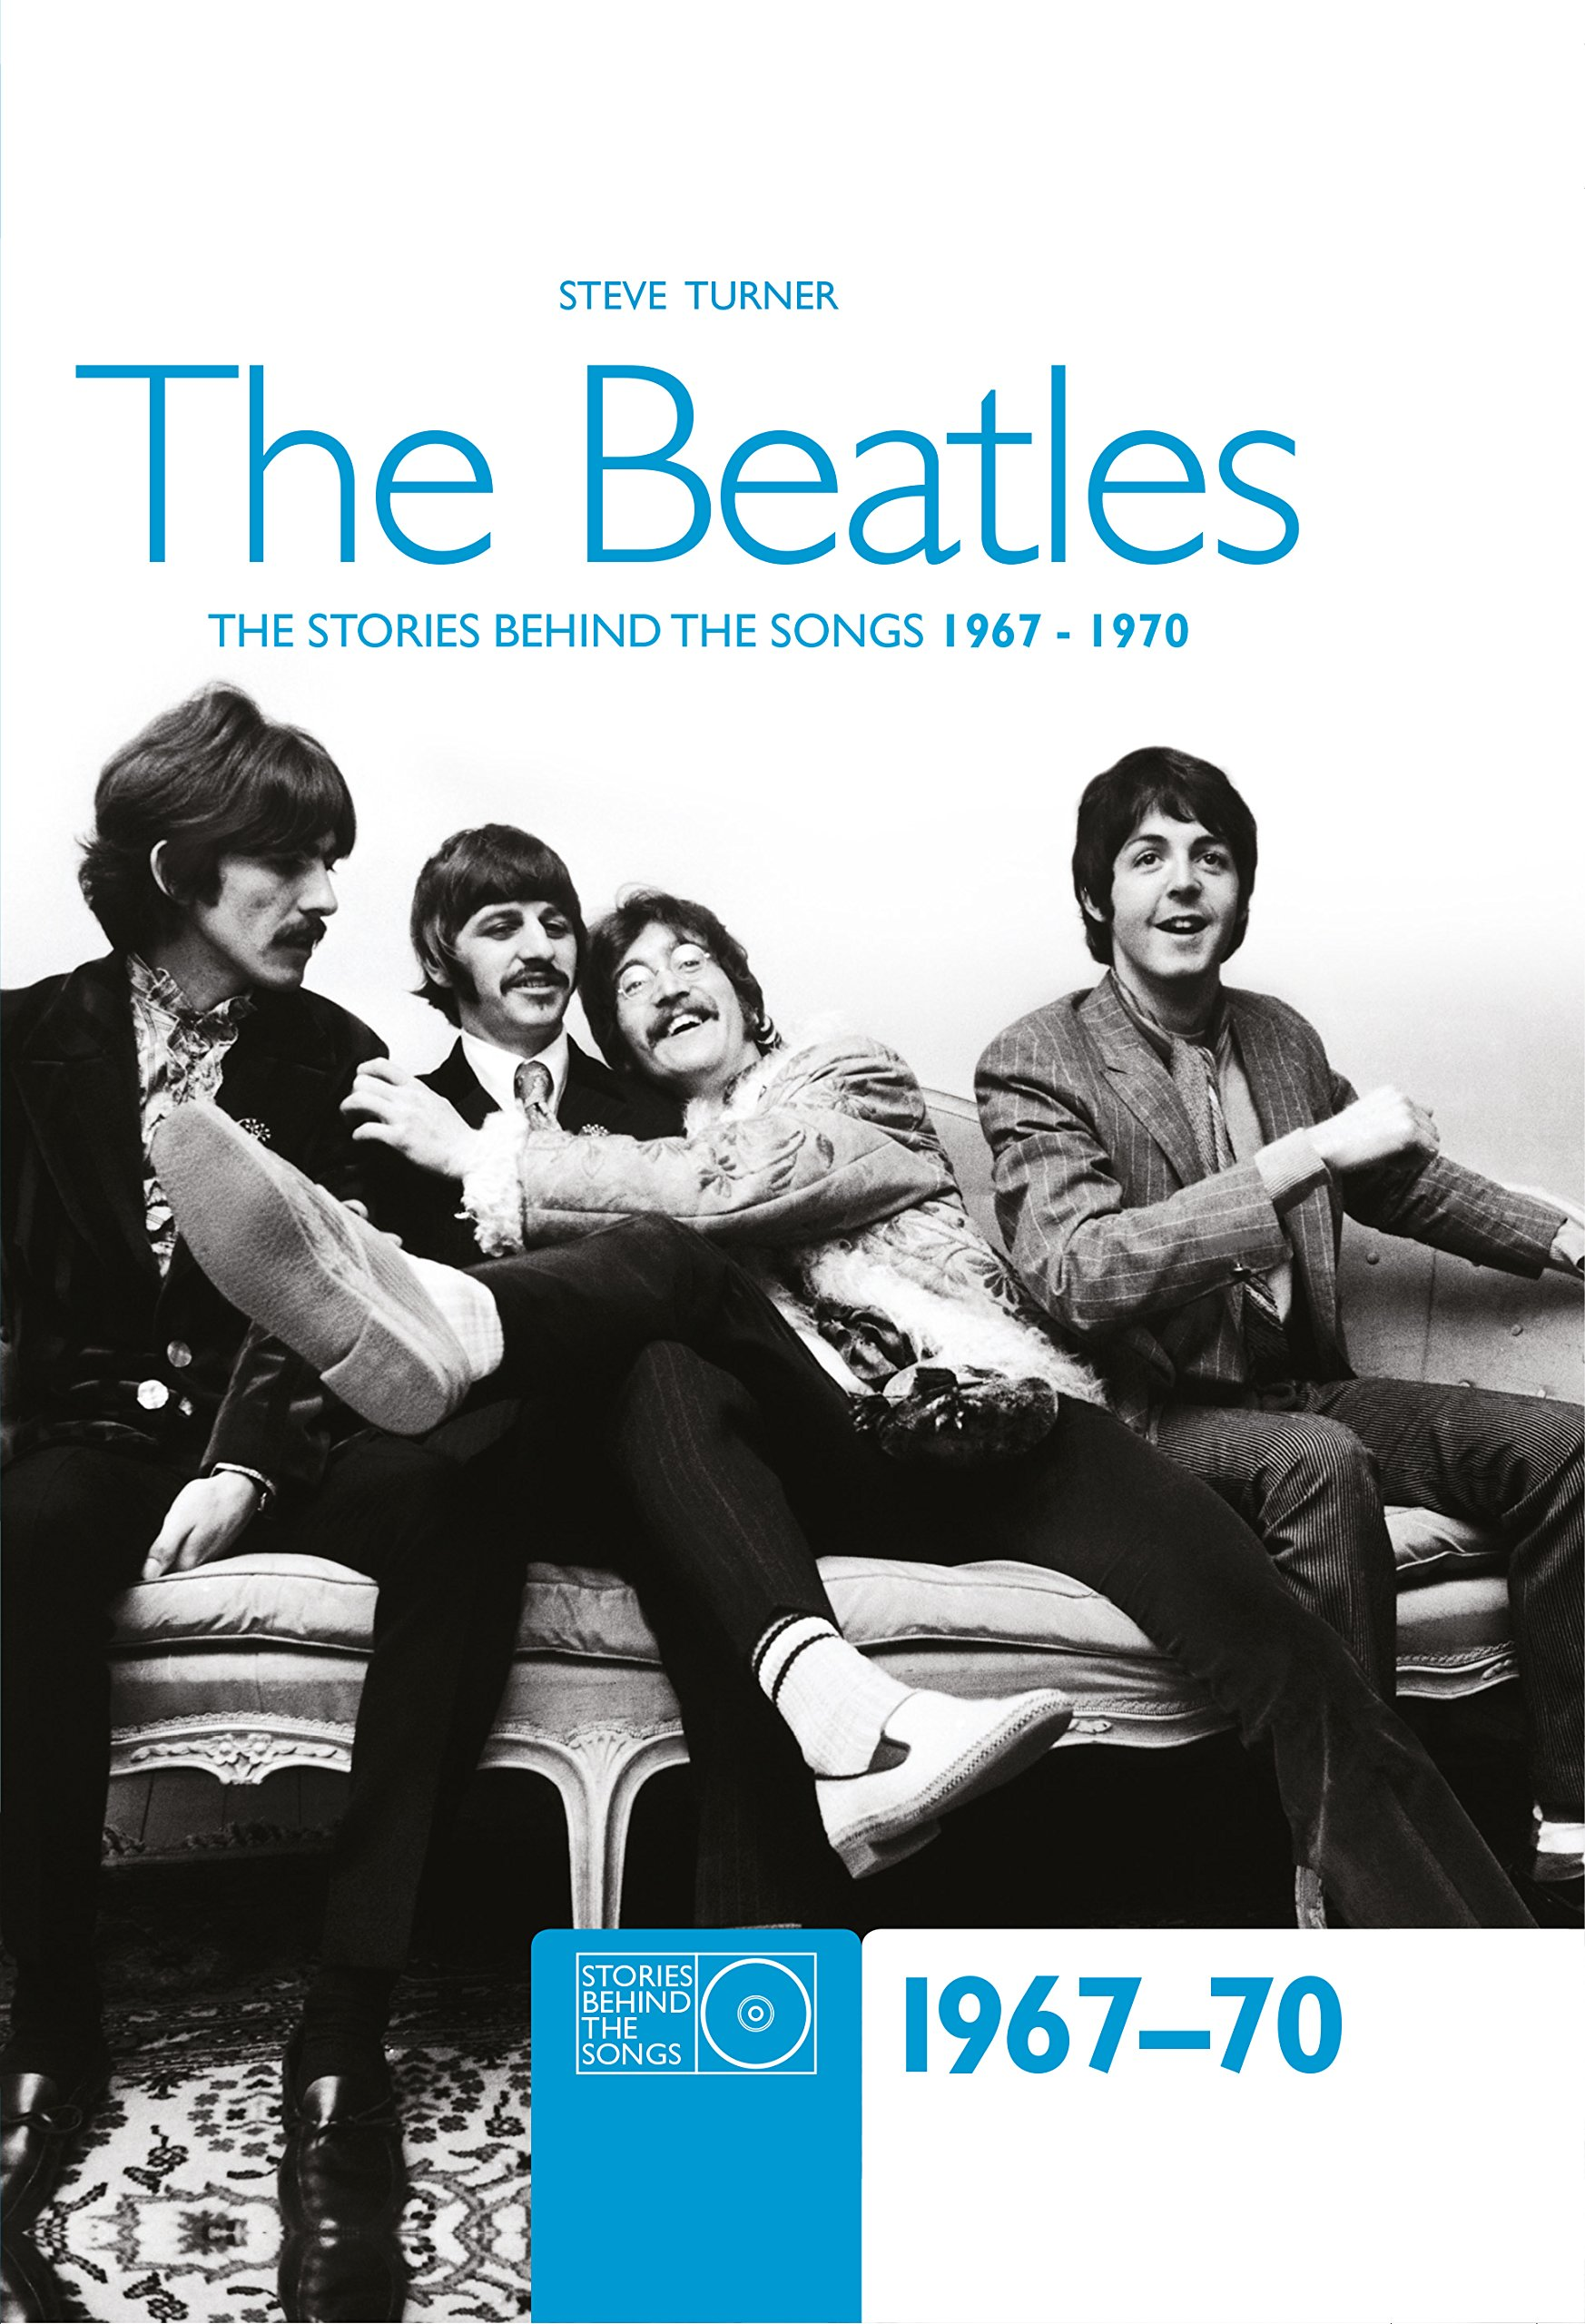 Download The Beatles 1967-70: The Stories Behind the Songs 1967-1970 PDF